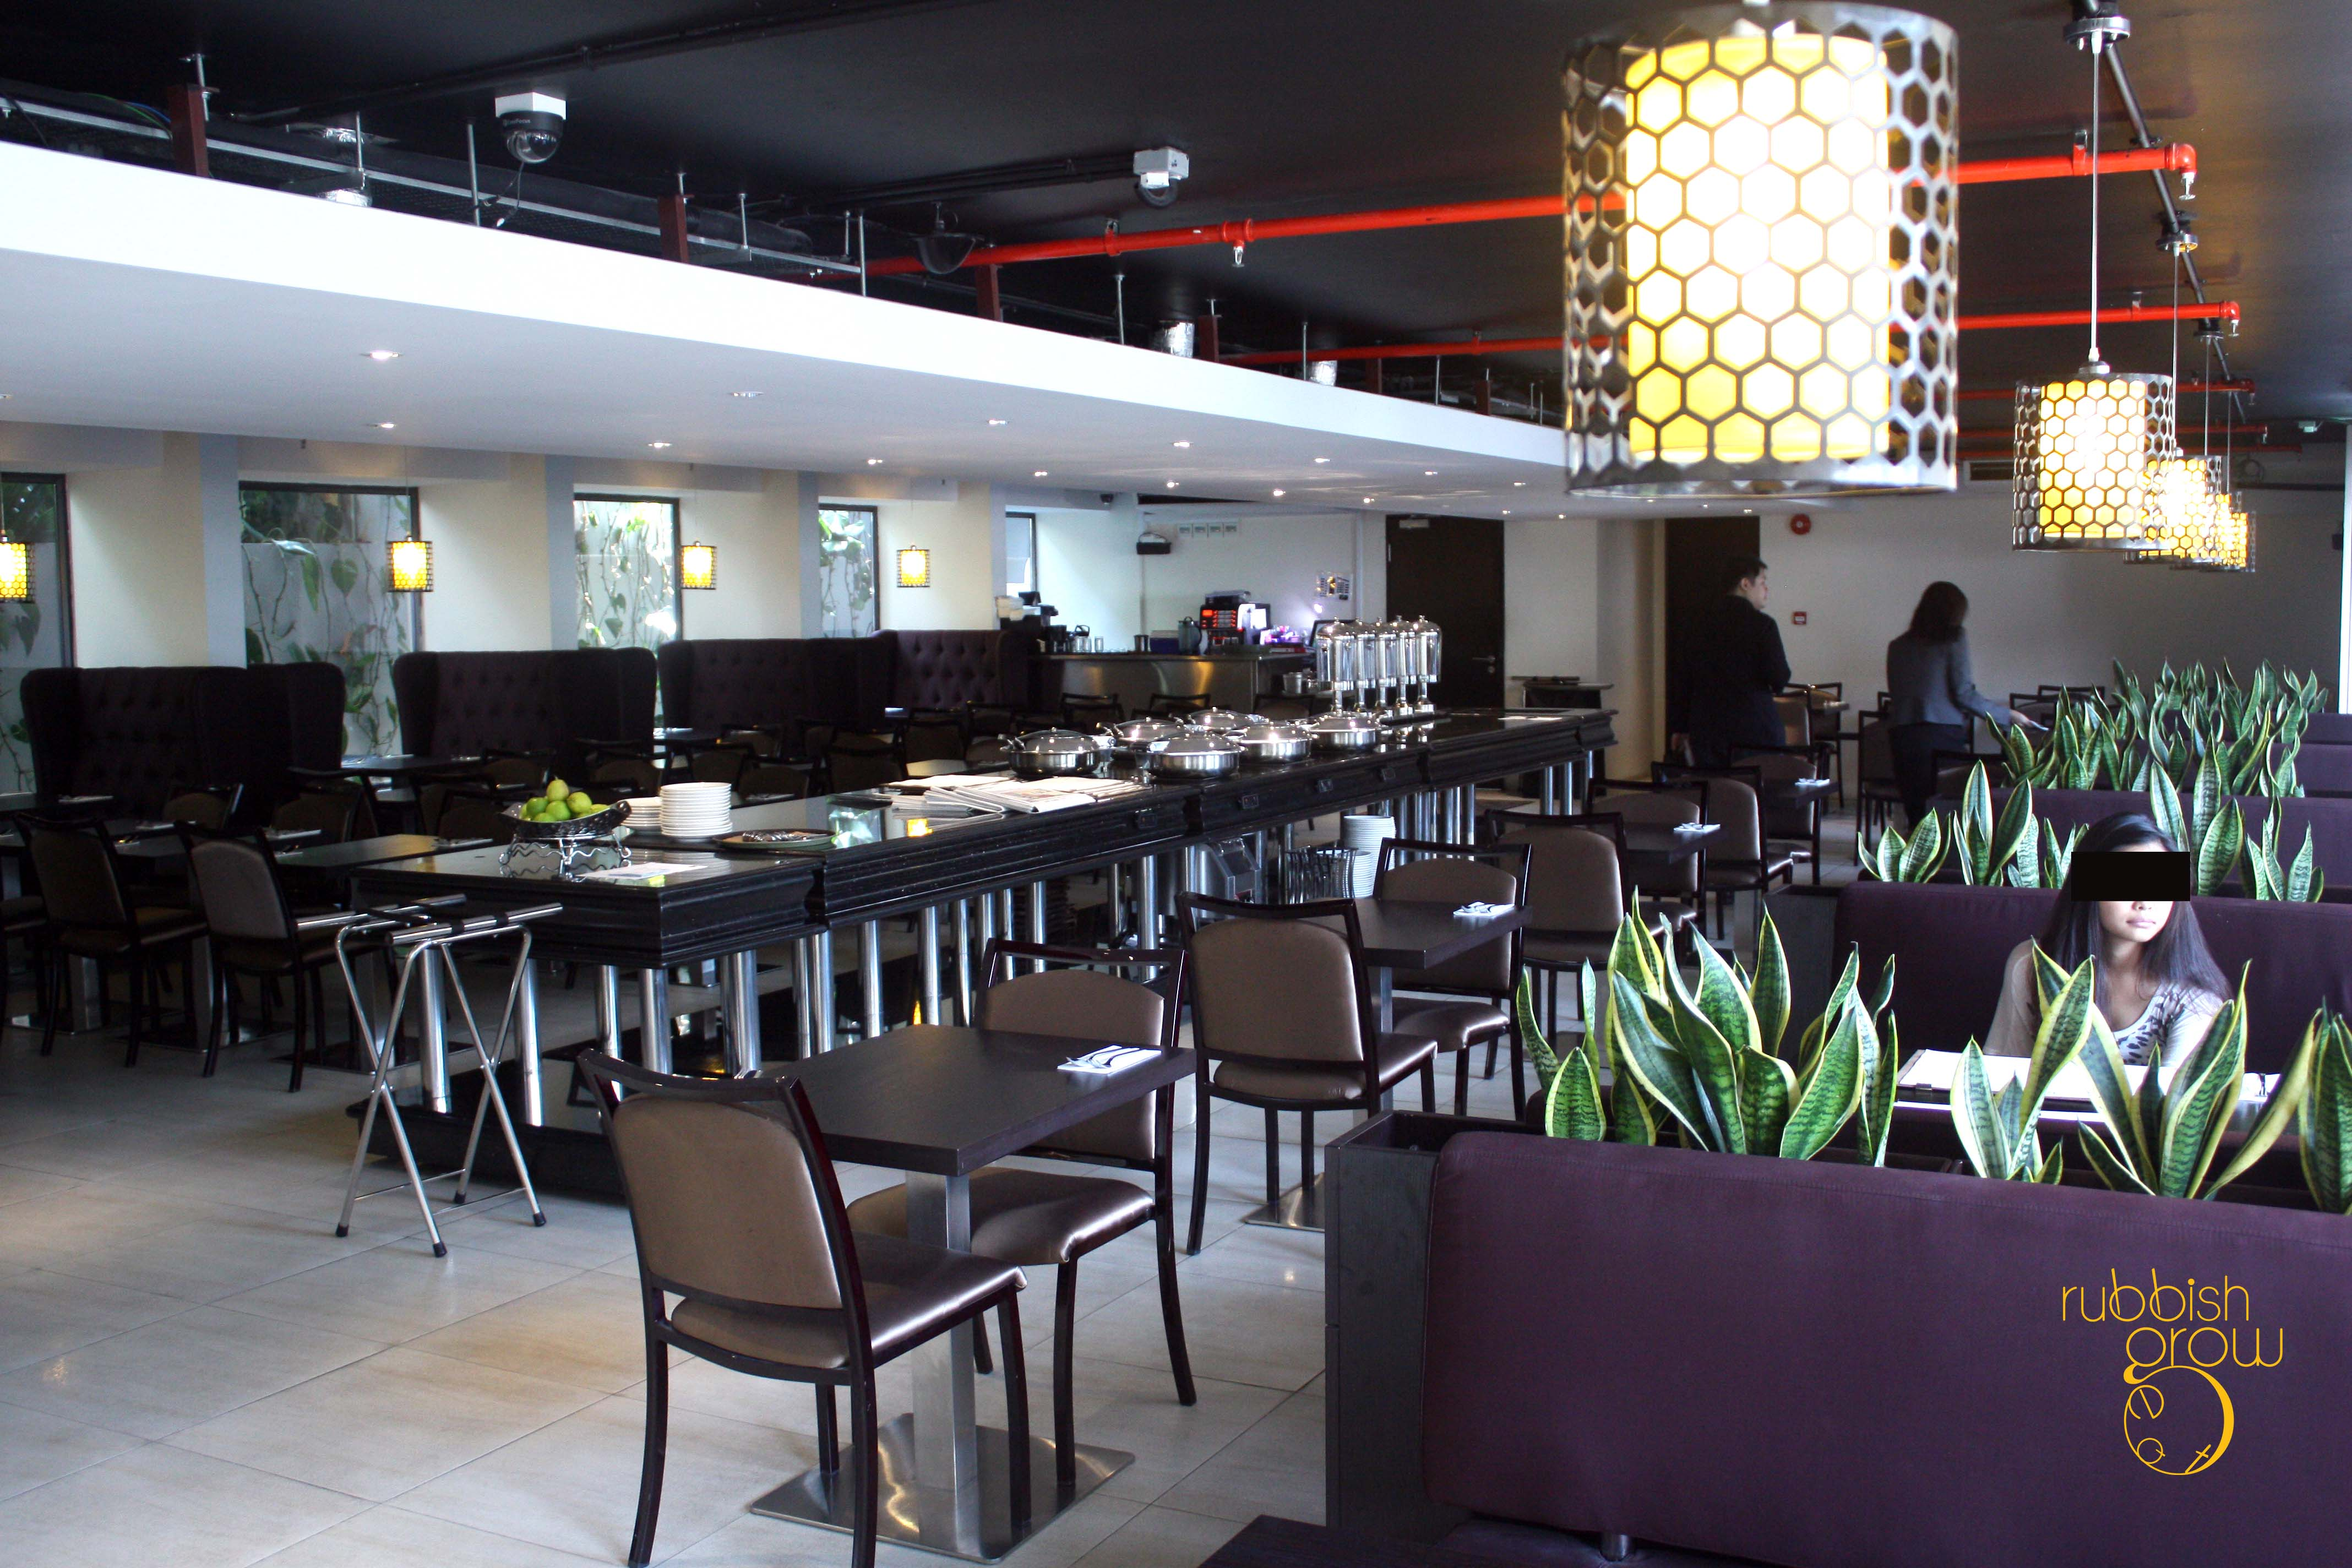 Situated On The First Floor Of Bay Hotel Just Across From VivoCity Rumah Rasa Halal Restaurant Has A Decor Wood Accented Interior With Shades